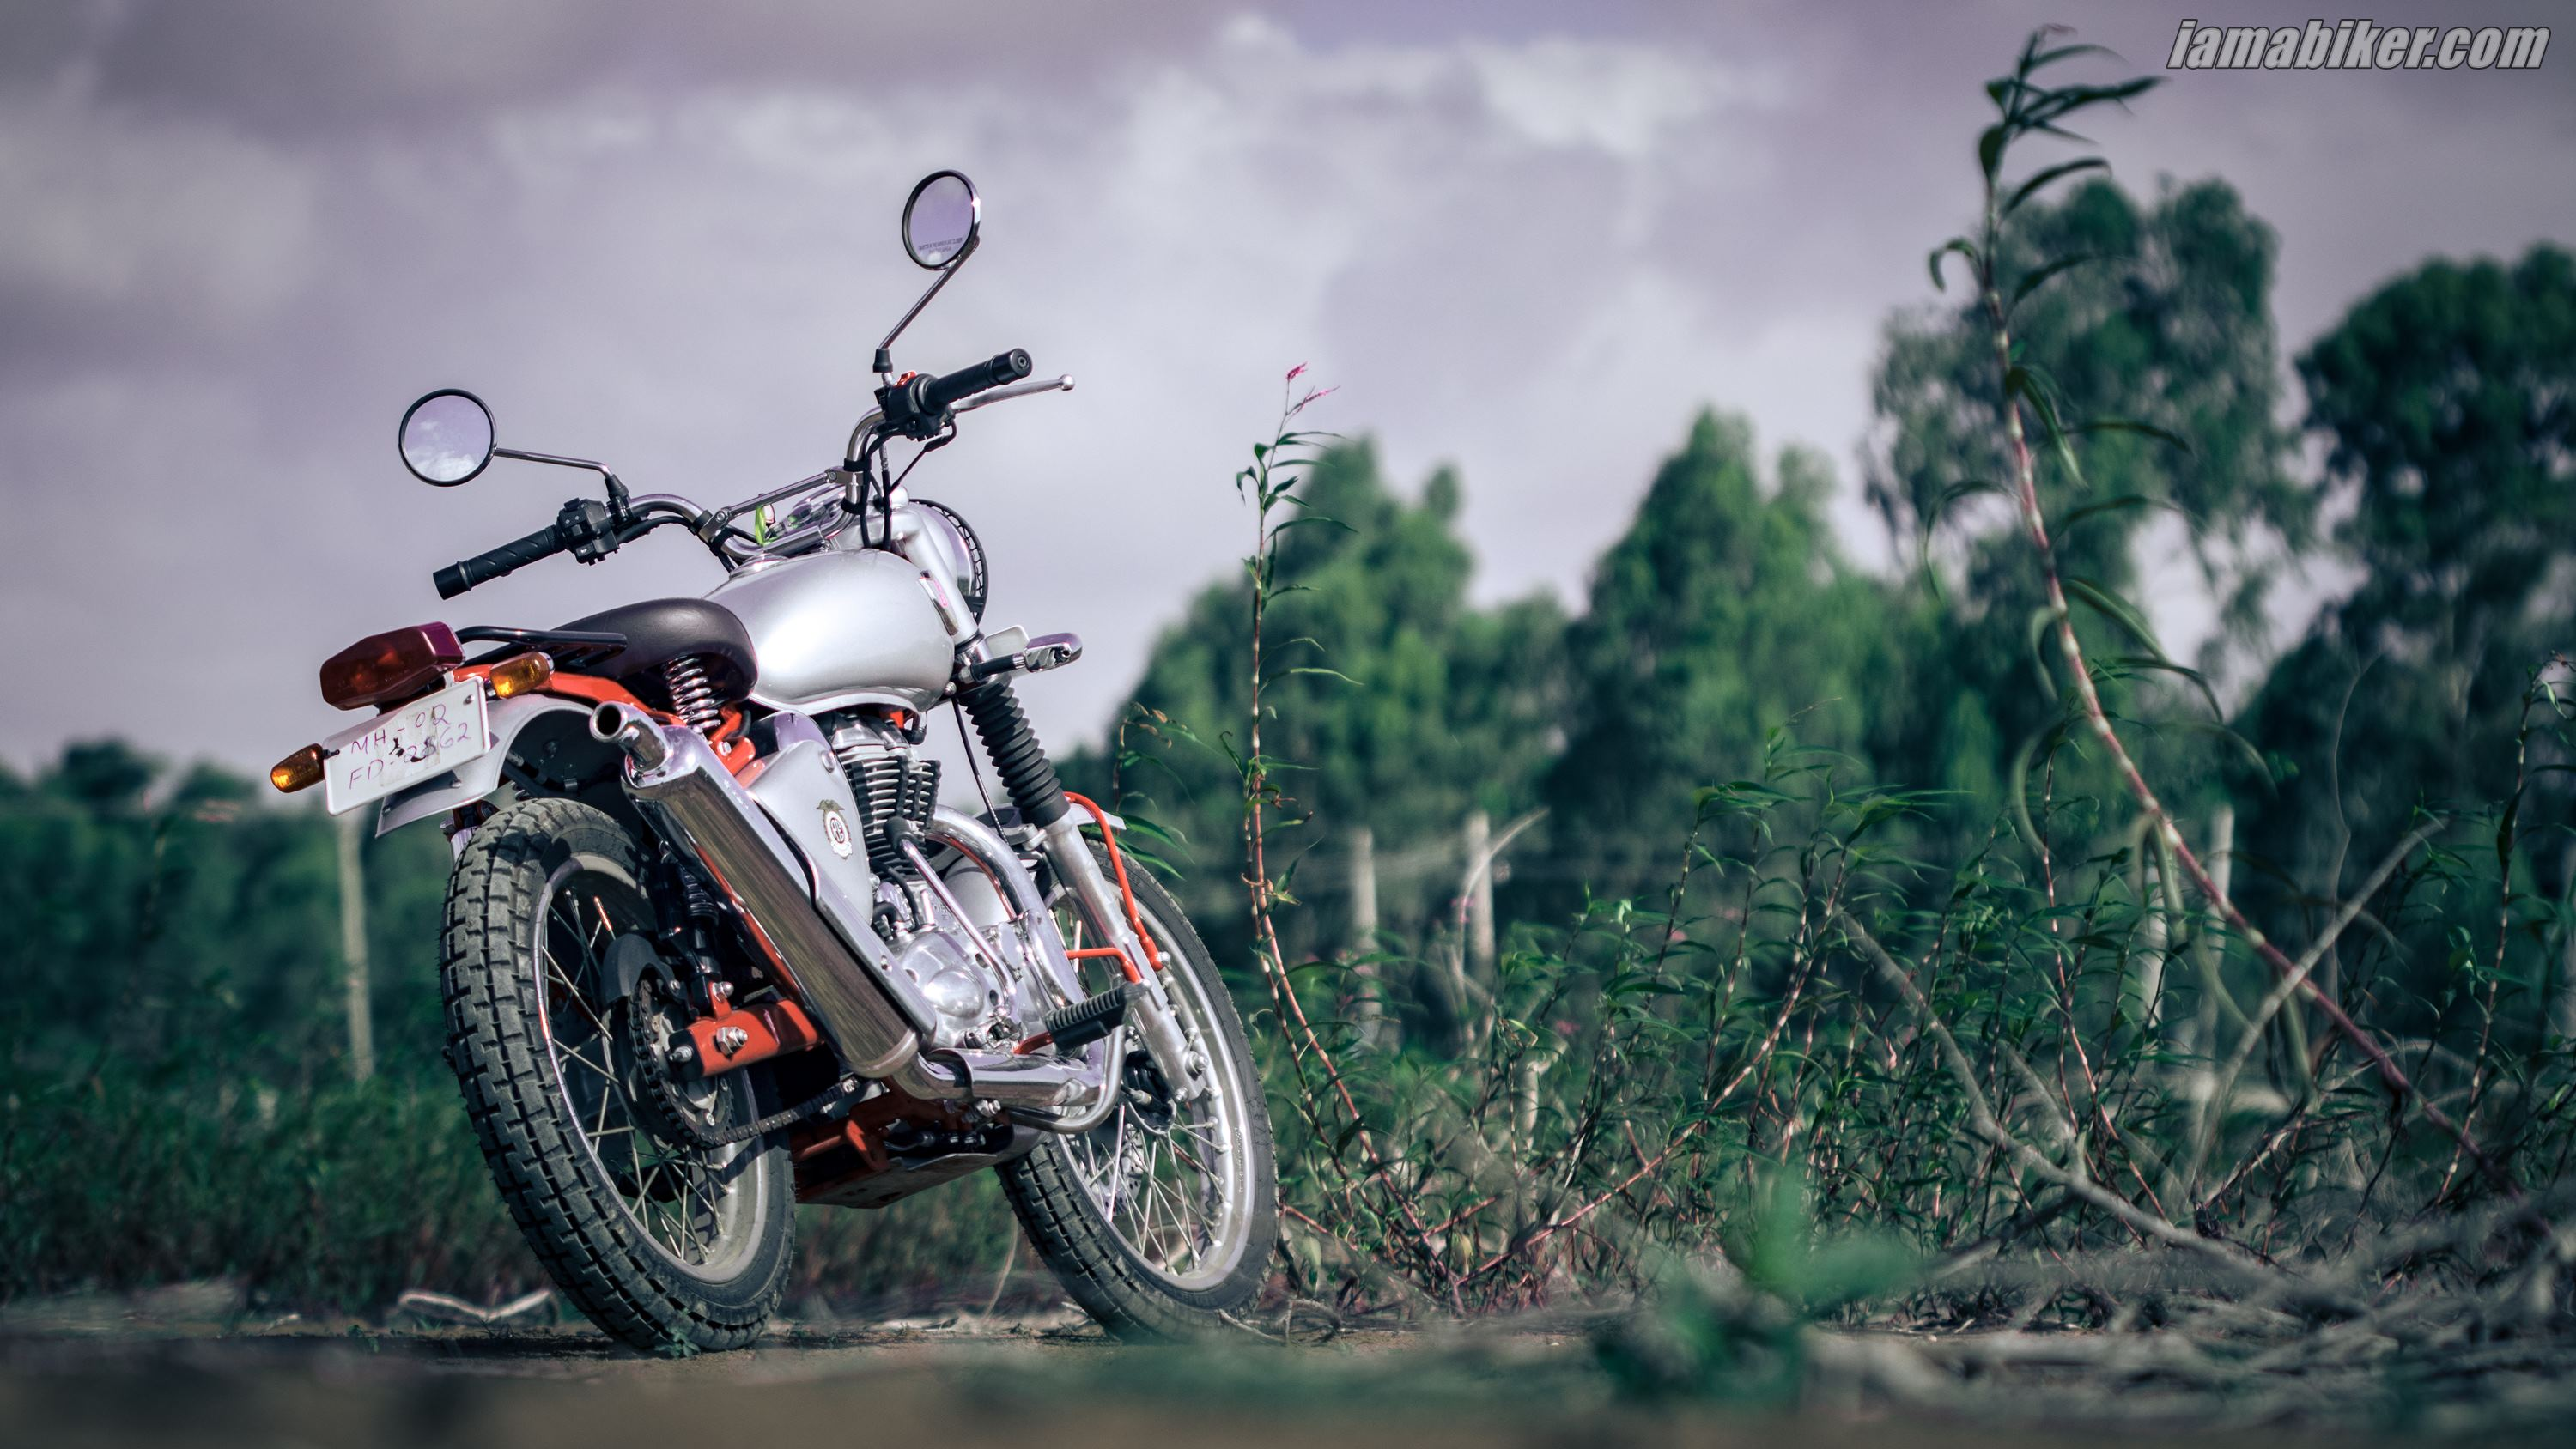 Royal Enfield Trials 350 HD wallpaper